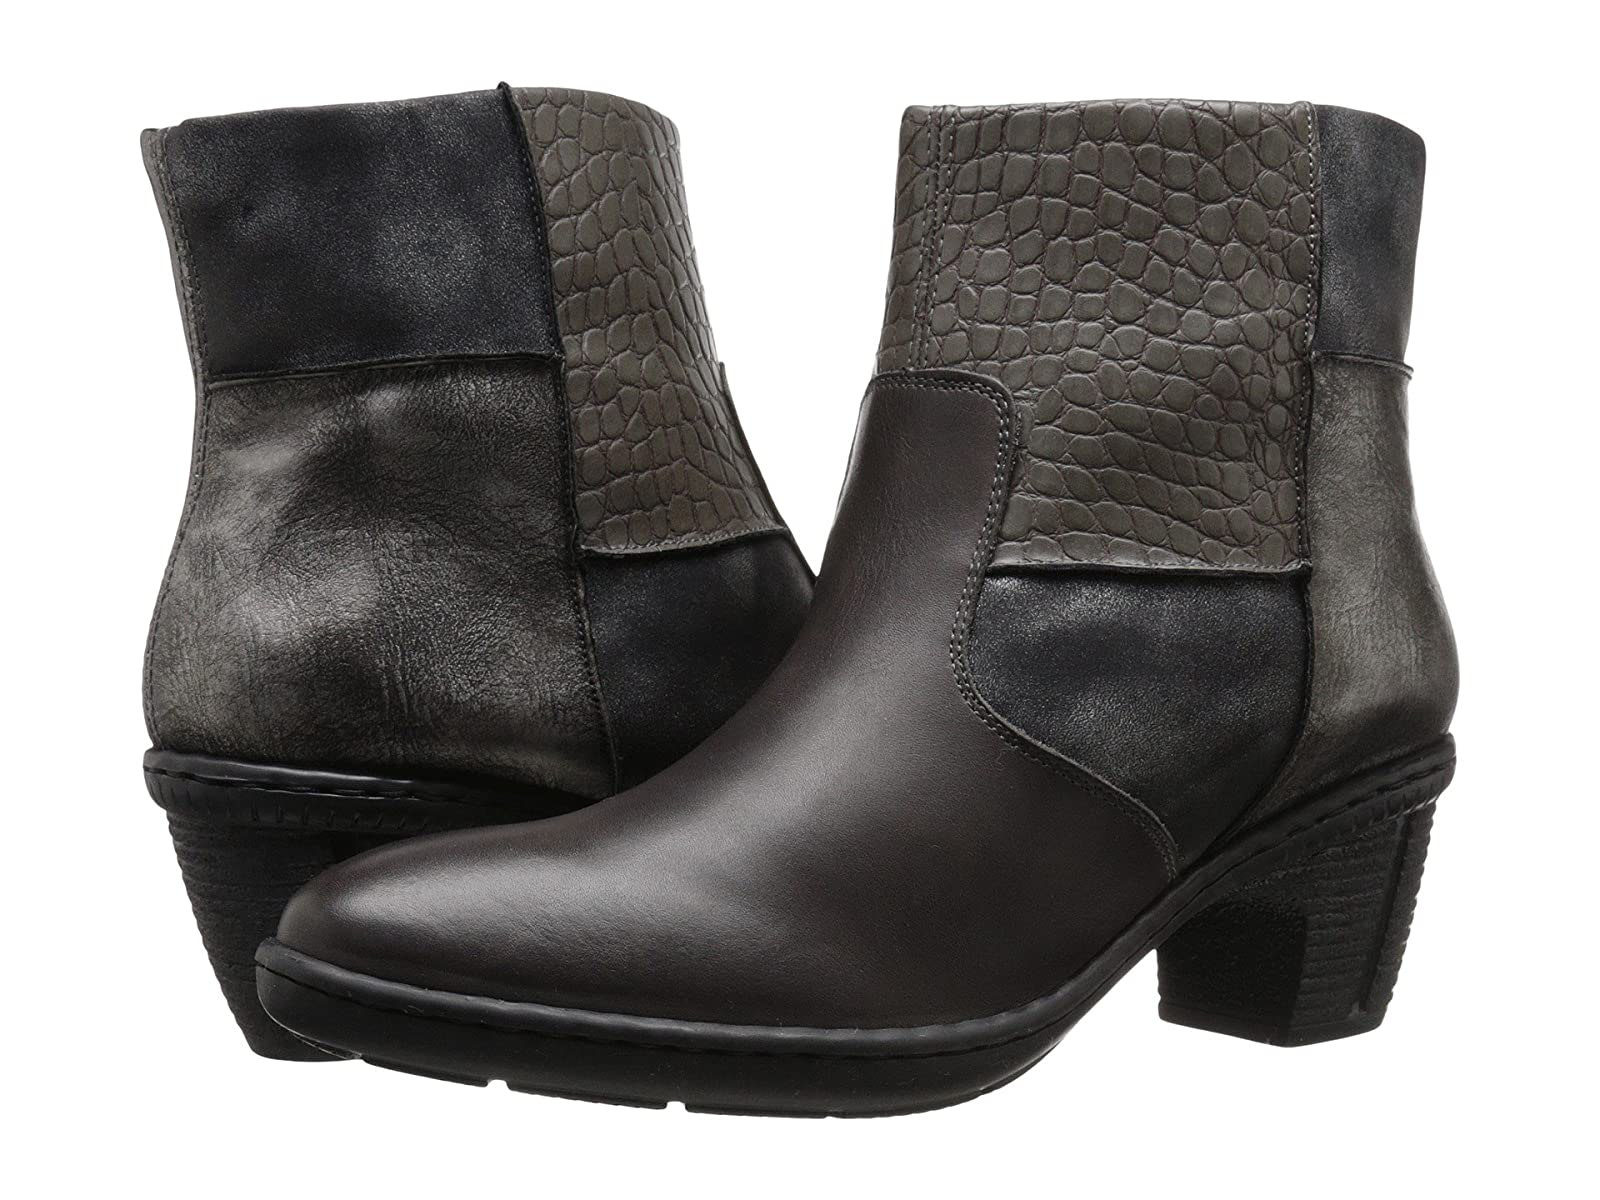 Rieker 70270Cheap and distinctive eye-catching shoes